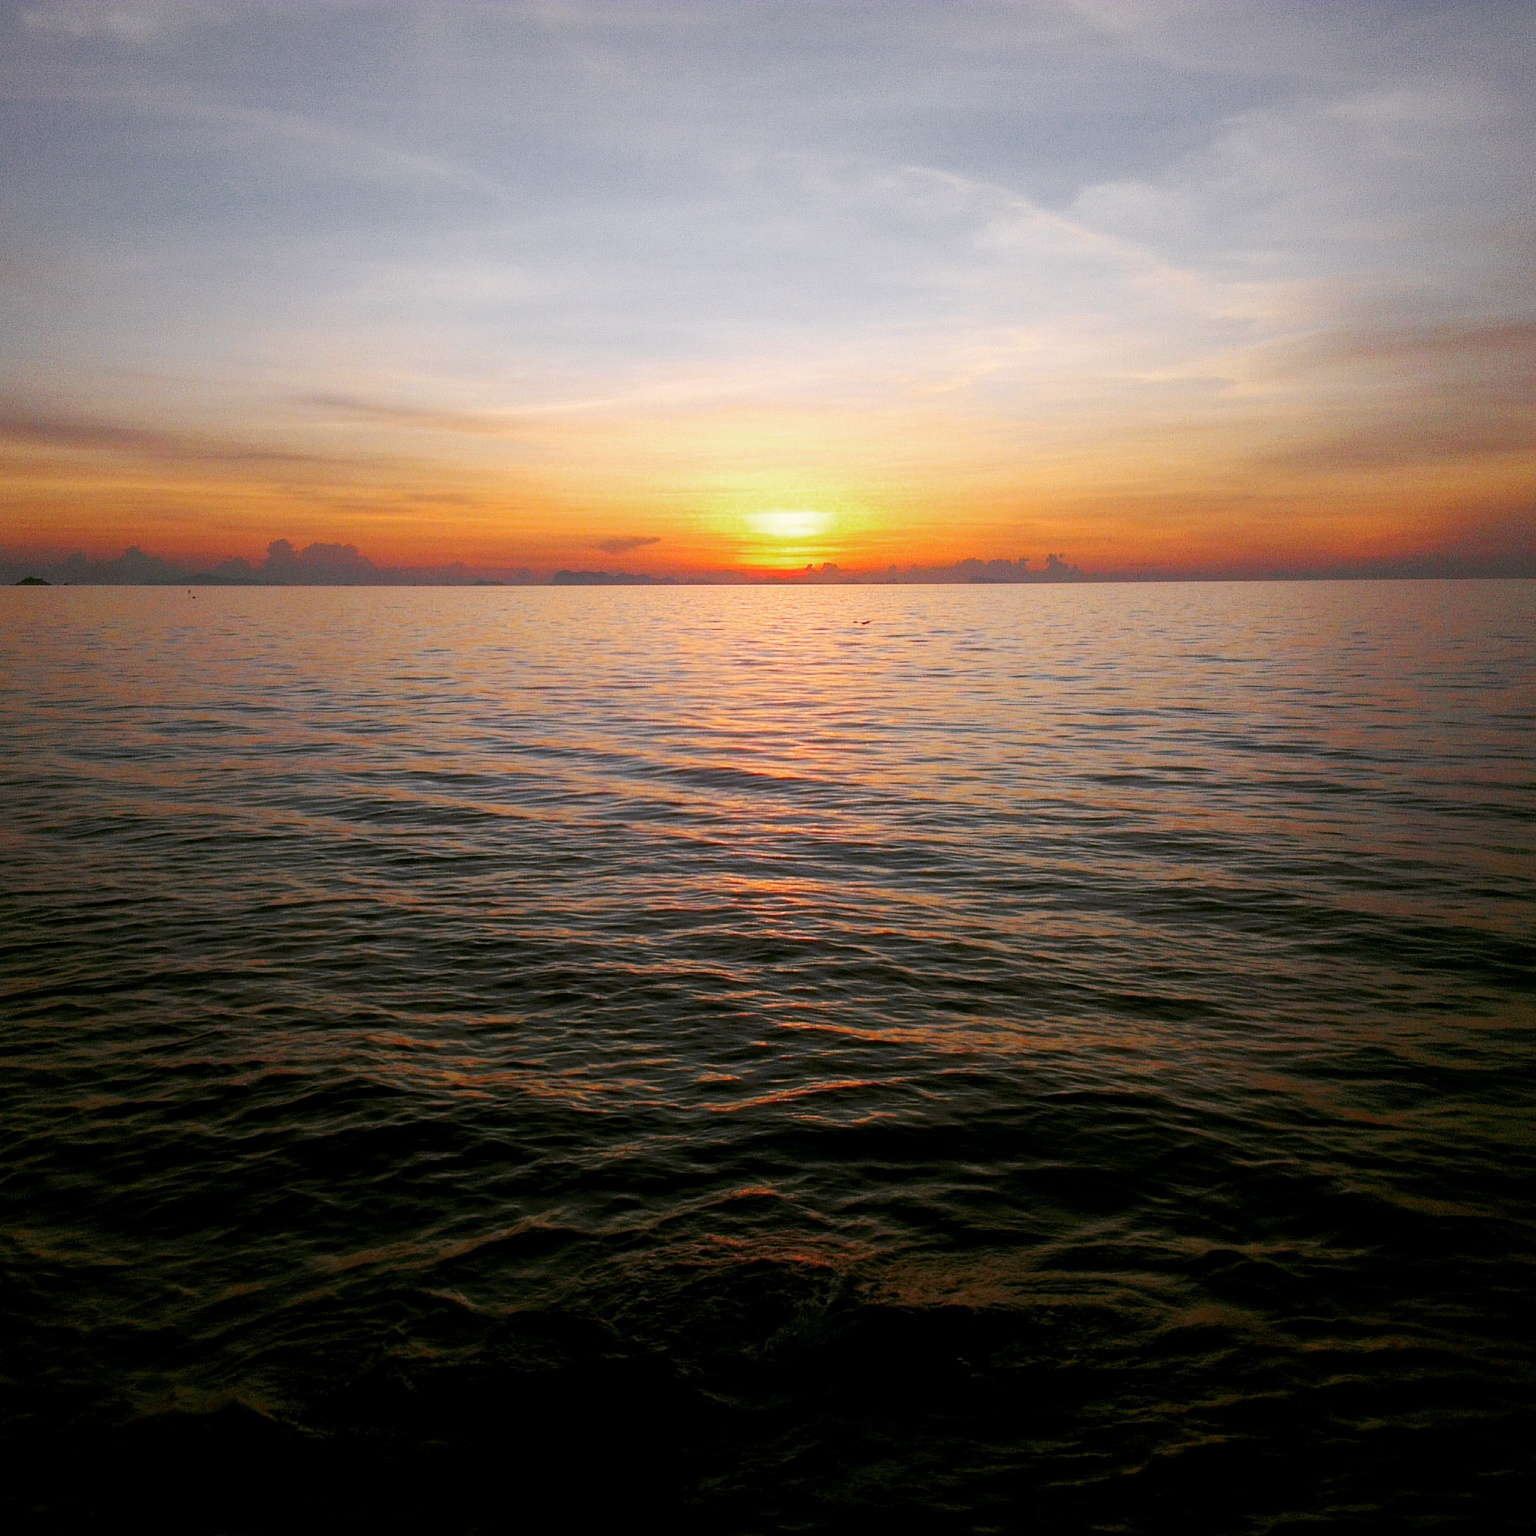 Sunset in Haad Son Koh Phangan